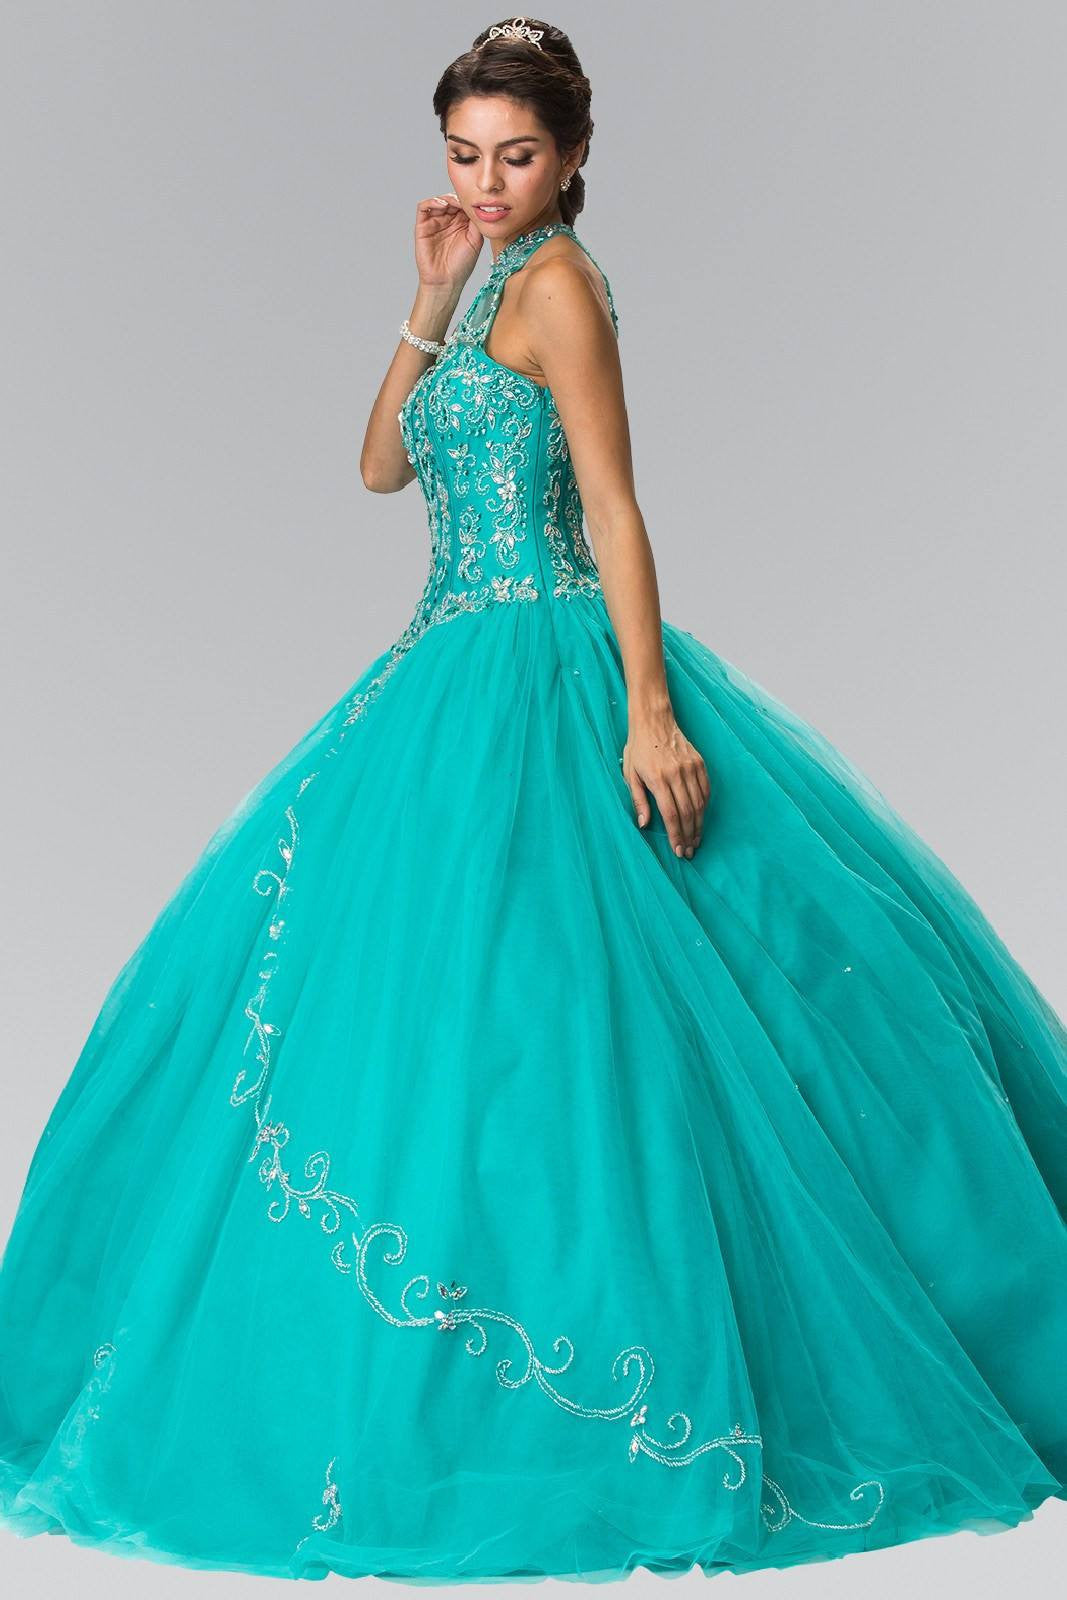 Ball gown prom dresses images | Fashion luxy dress